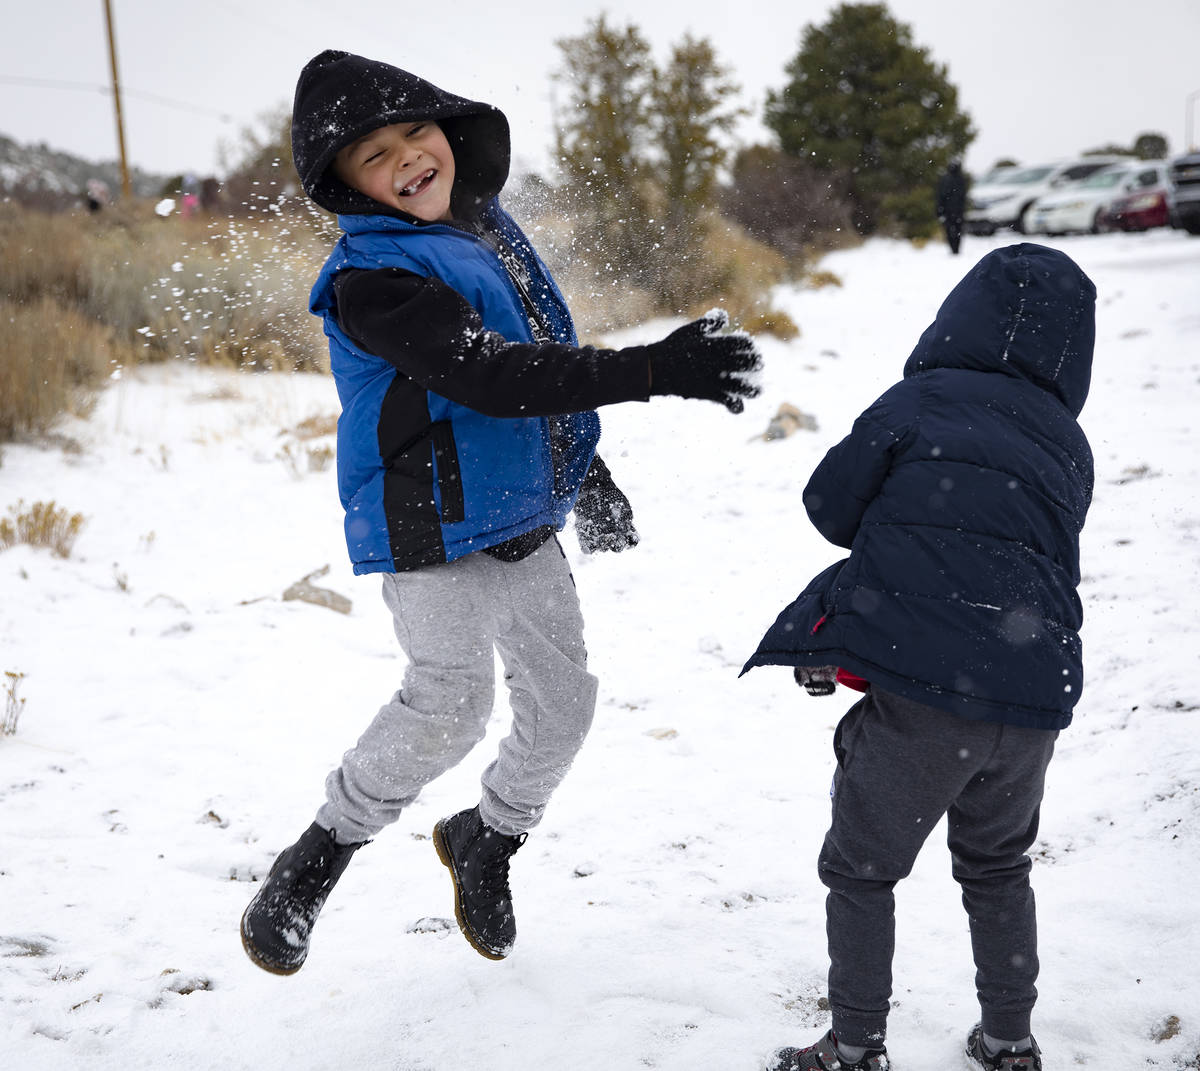 Aaron Vasquez, 8, is hit with a snowball while playing with his brothers at Mt. Charleston, Sun ...